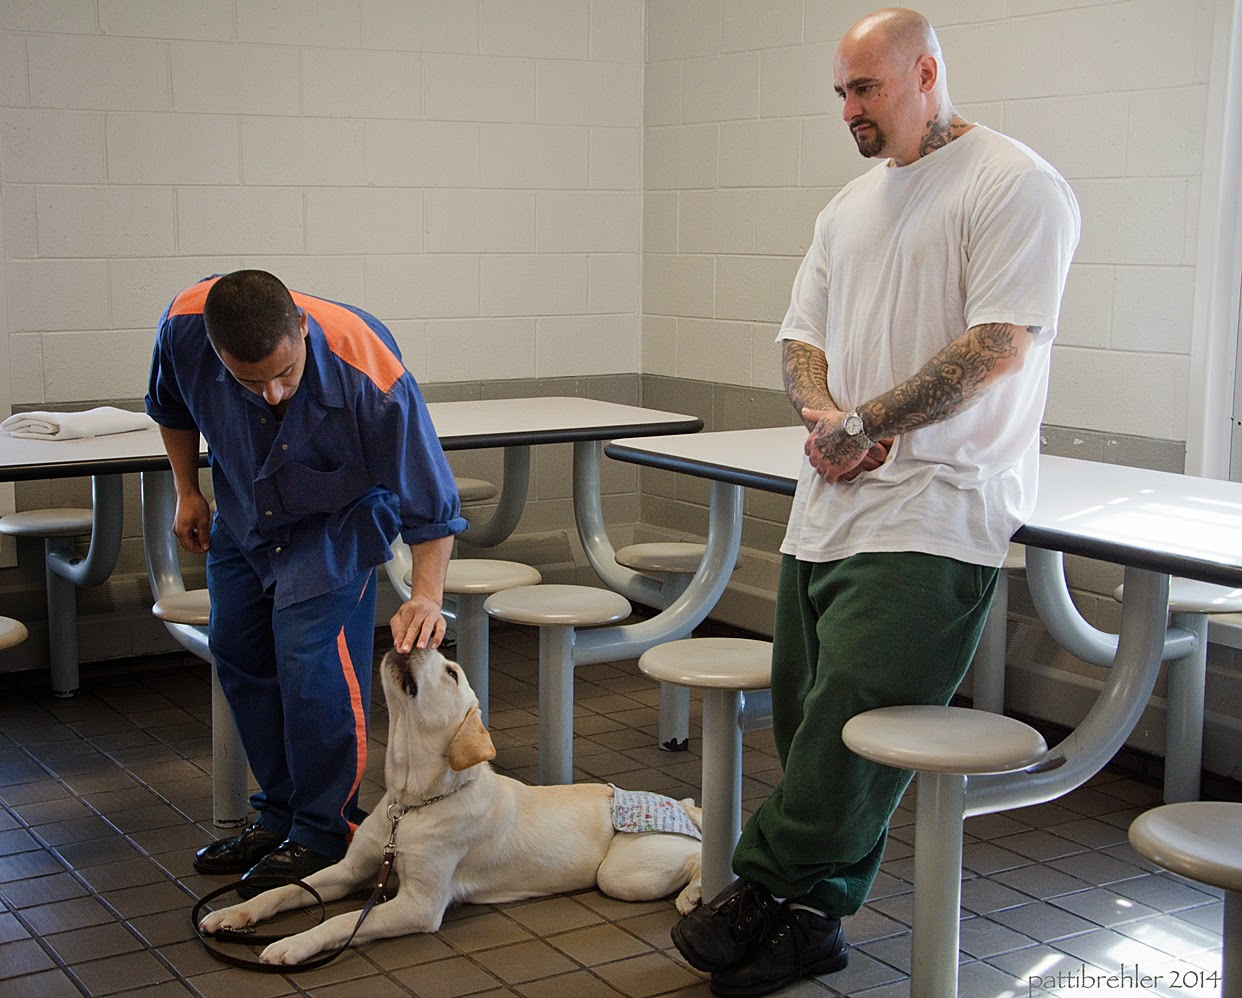 A man dressed in the prison blue uniform is leaning over a yellow lab, placing a treat in her mouth. The lab is lying on the tile floor, her leash is draped across her front legs. She is wearing panties because she is in heat. A second man is leaning against a lunch table with his hands crossed  at his waist. He is bald with tatoos on his foreamrs, he is wearing green prison pants and a white t-shirt.